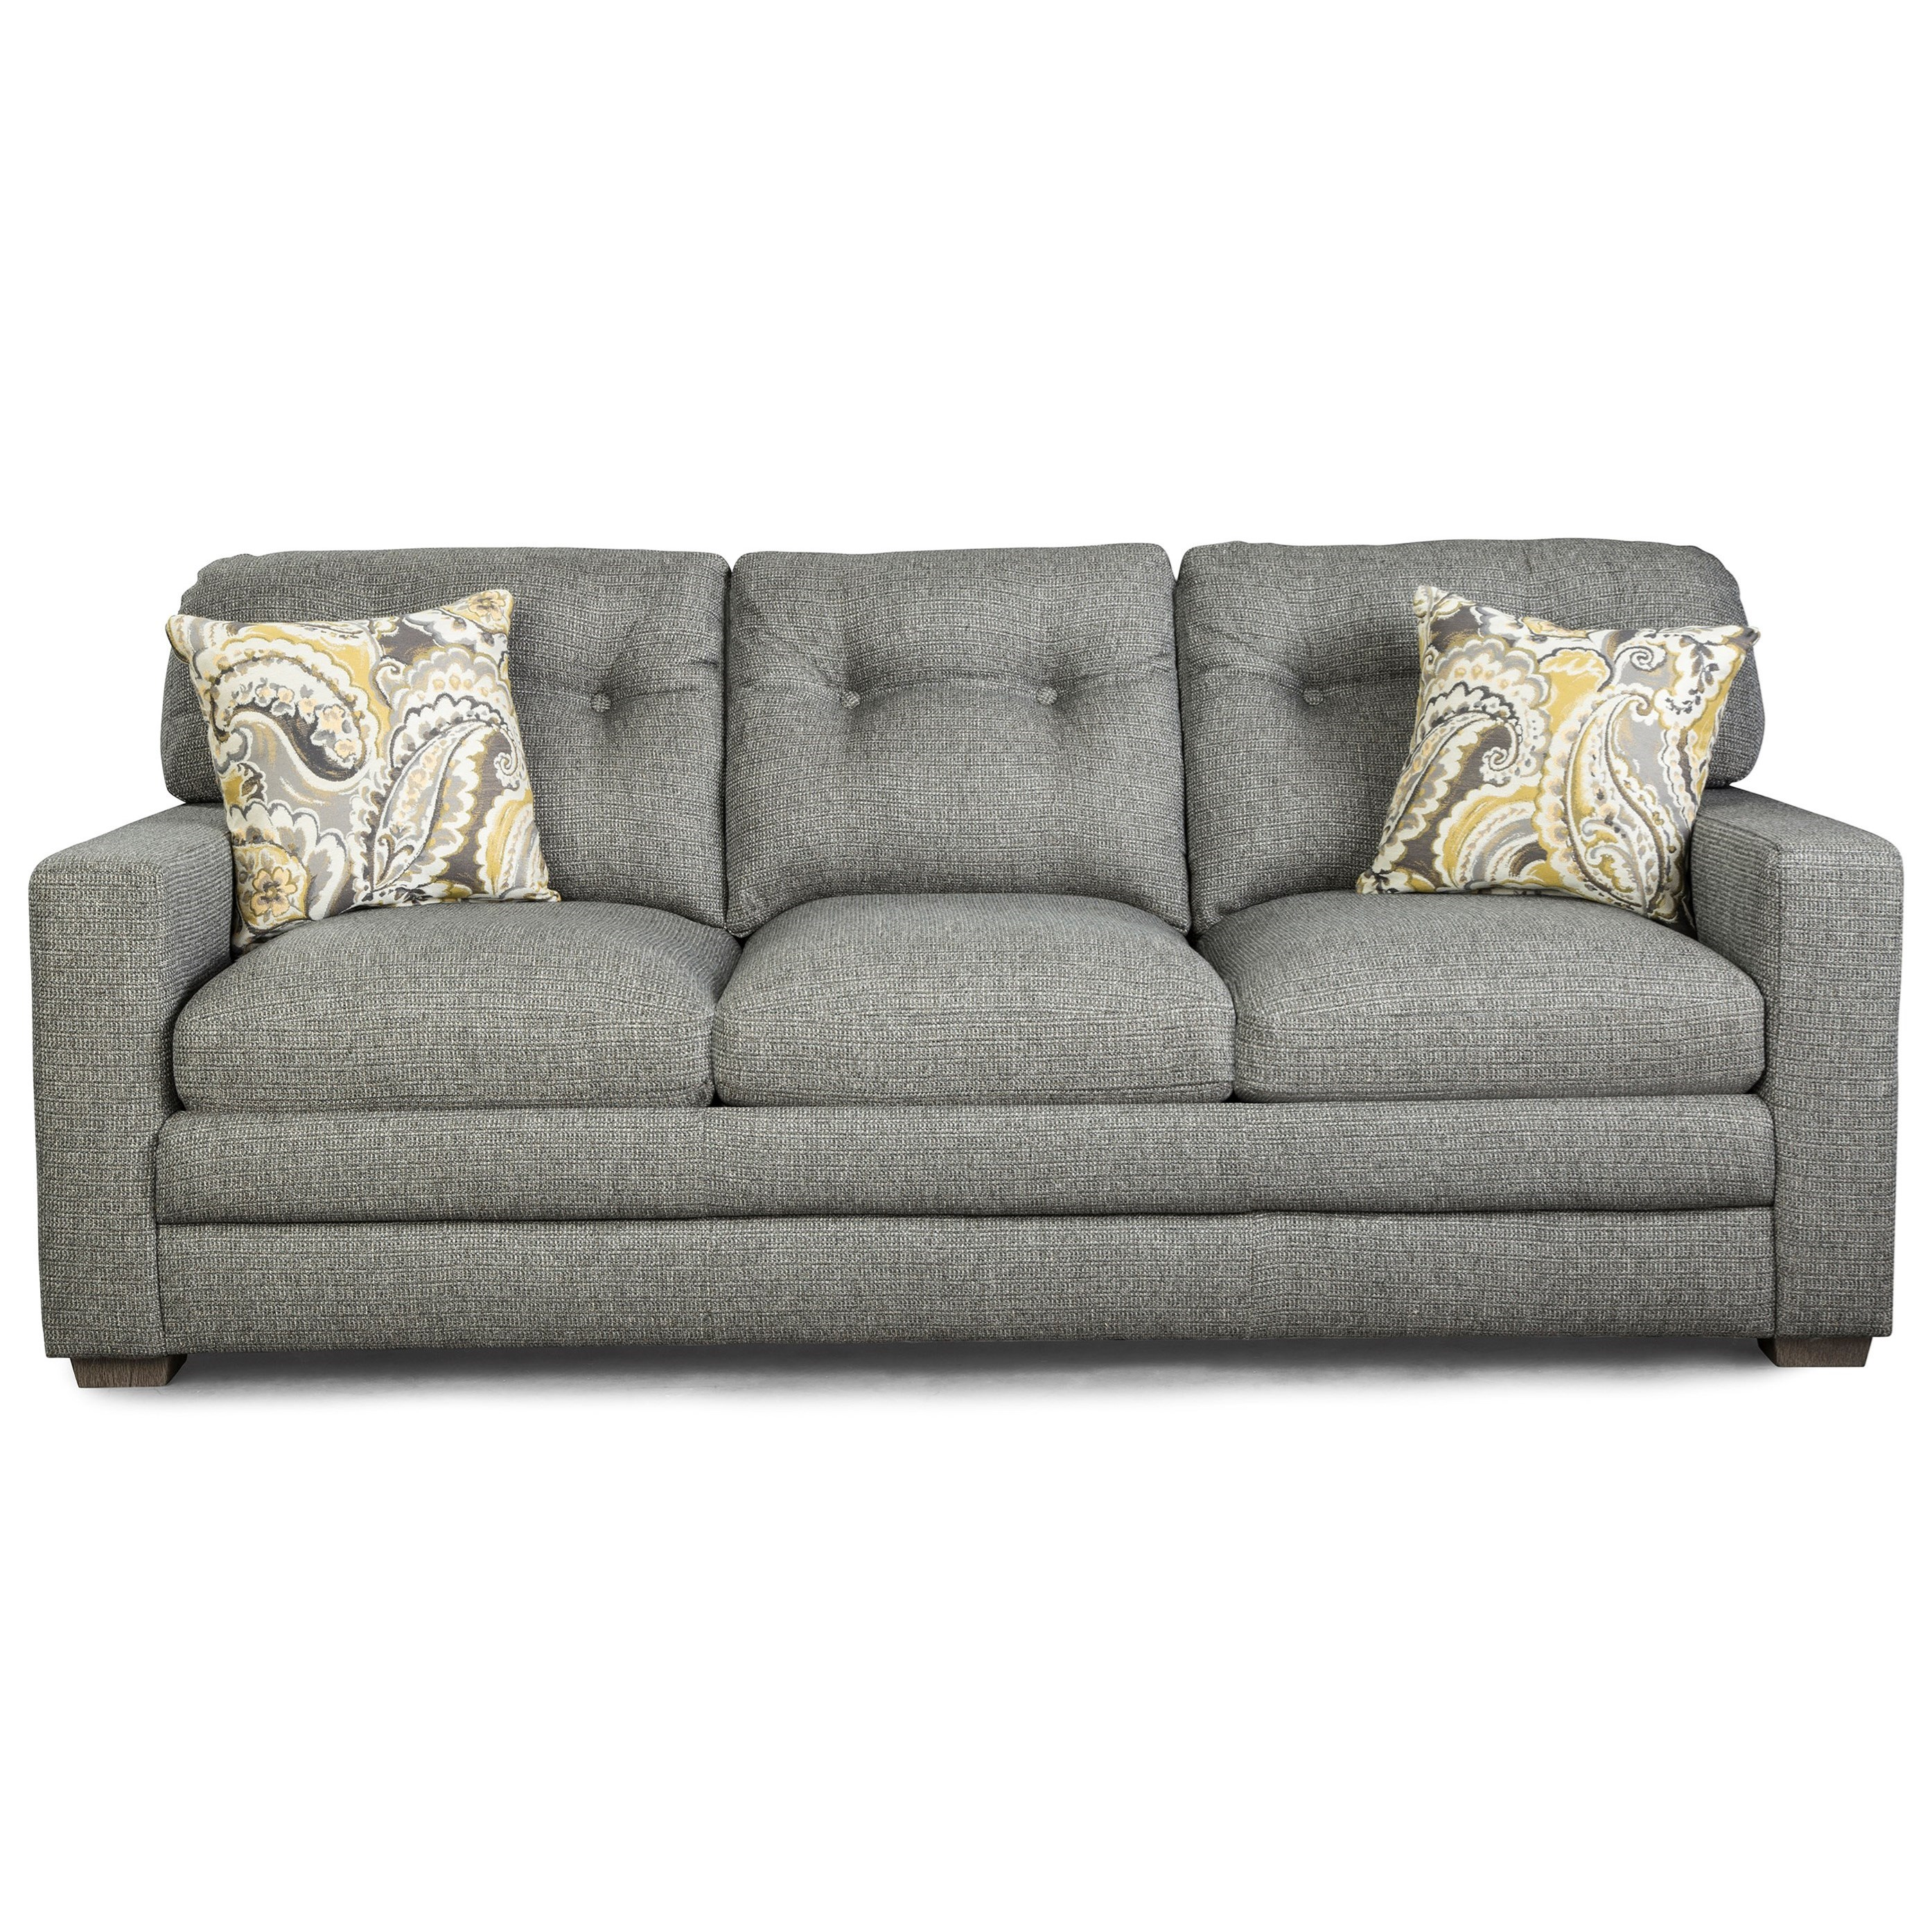 Cabrillo Contemporary Tufted Sofa by Best Home Furnishings at Rooms and Rest